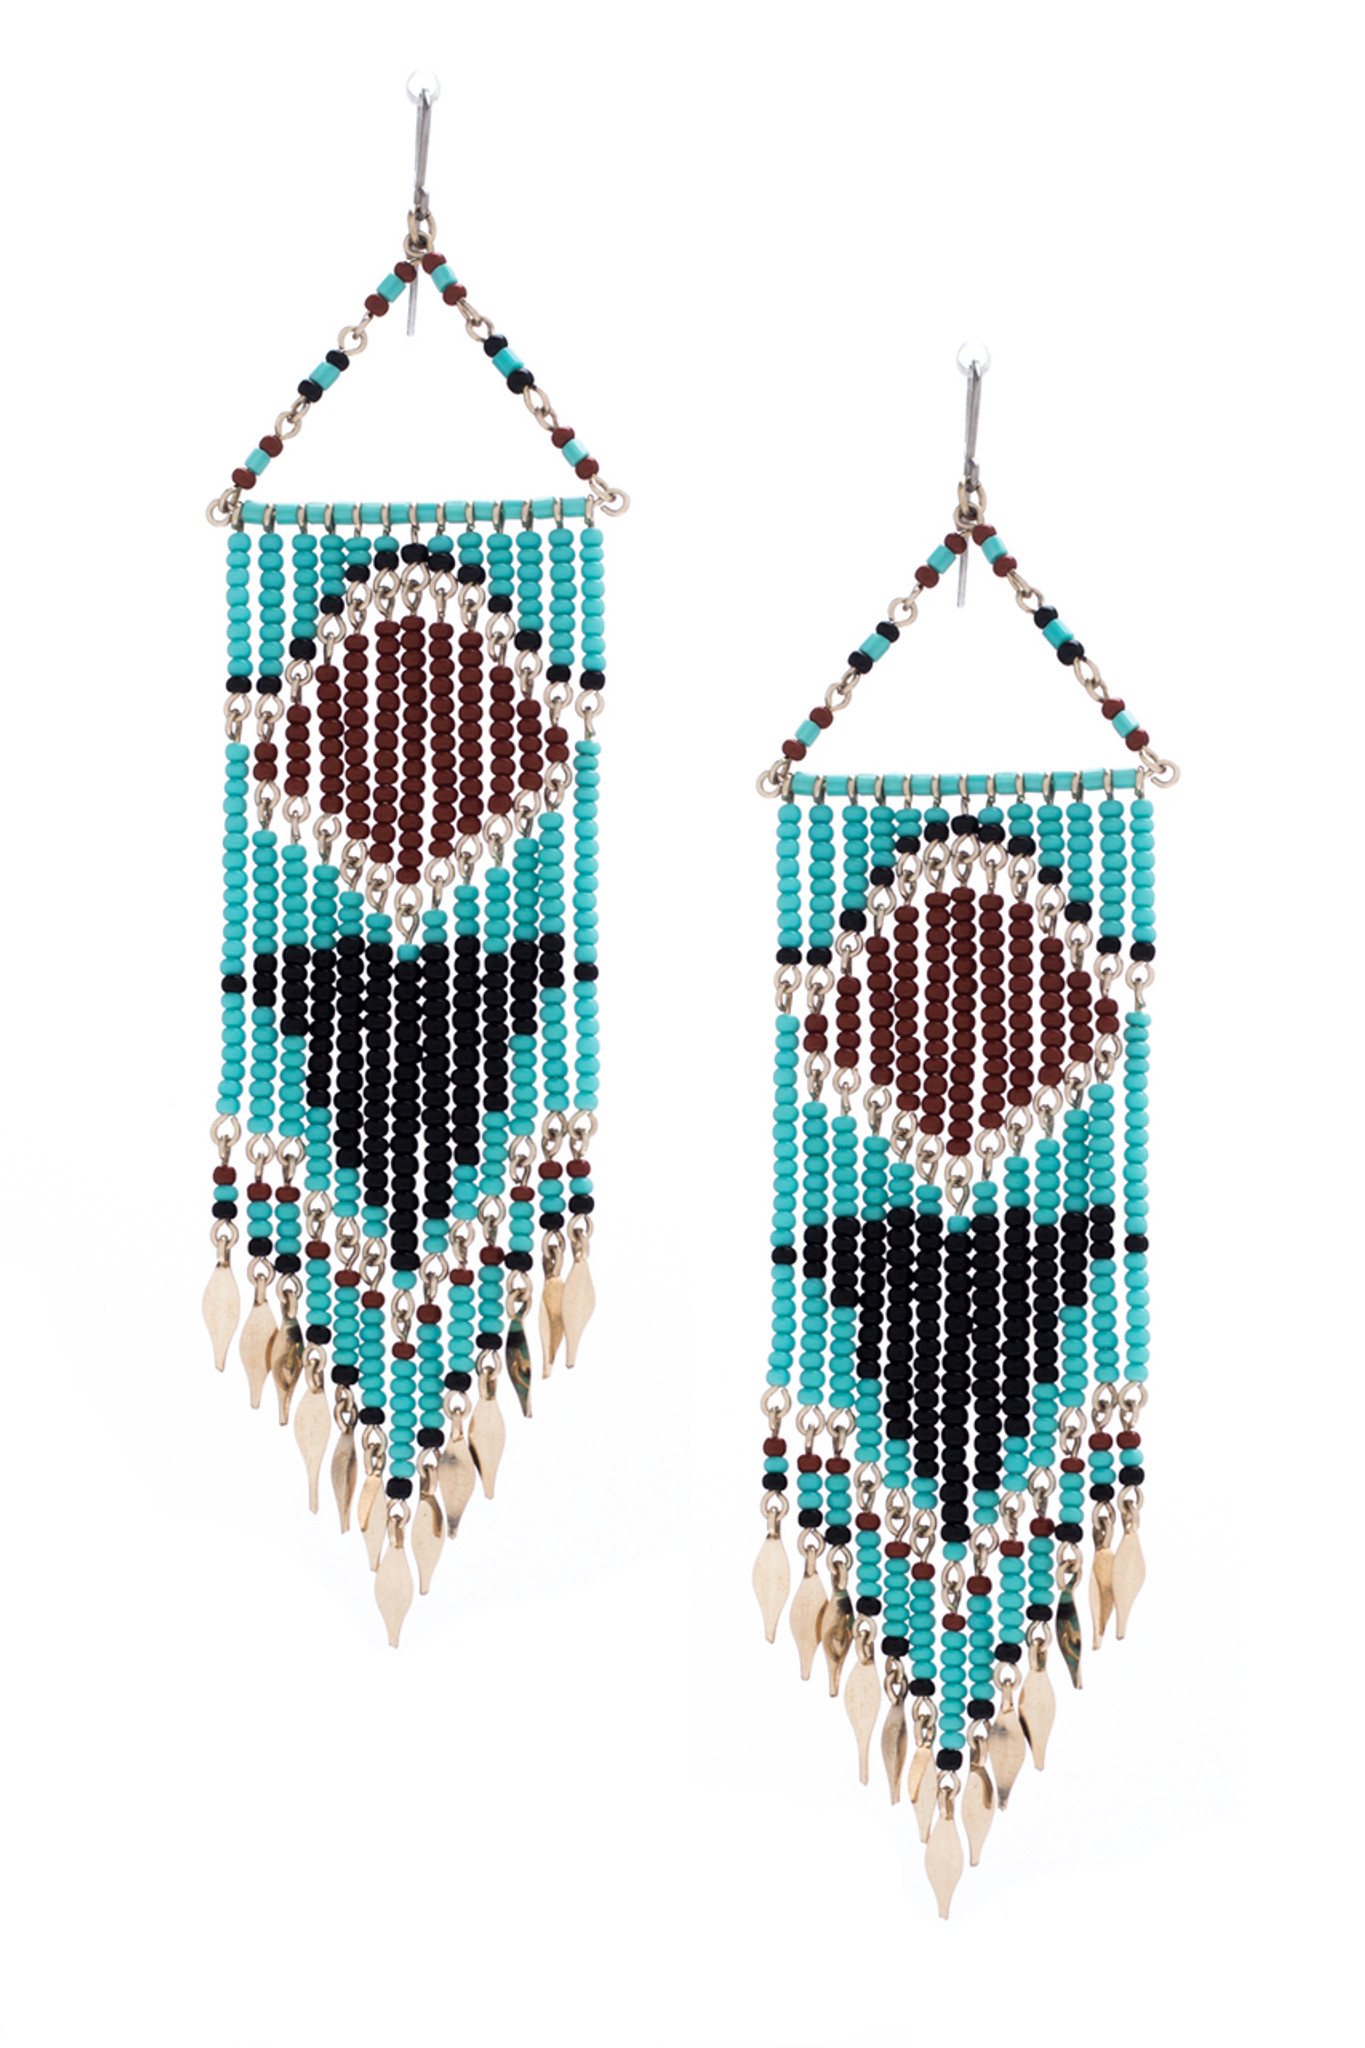 jewellery handmade buy oscar la livemaster shop earrings beaded renta item jewelry de ear tassel